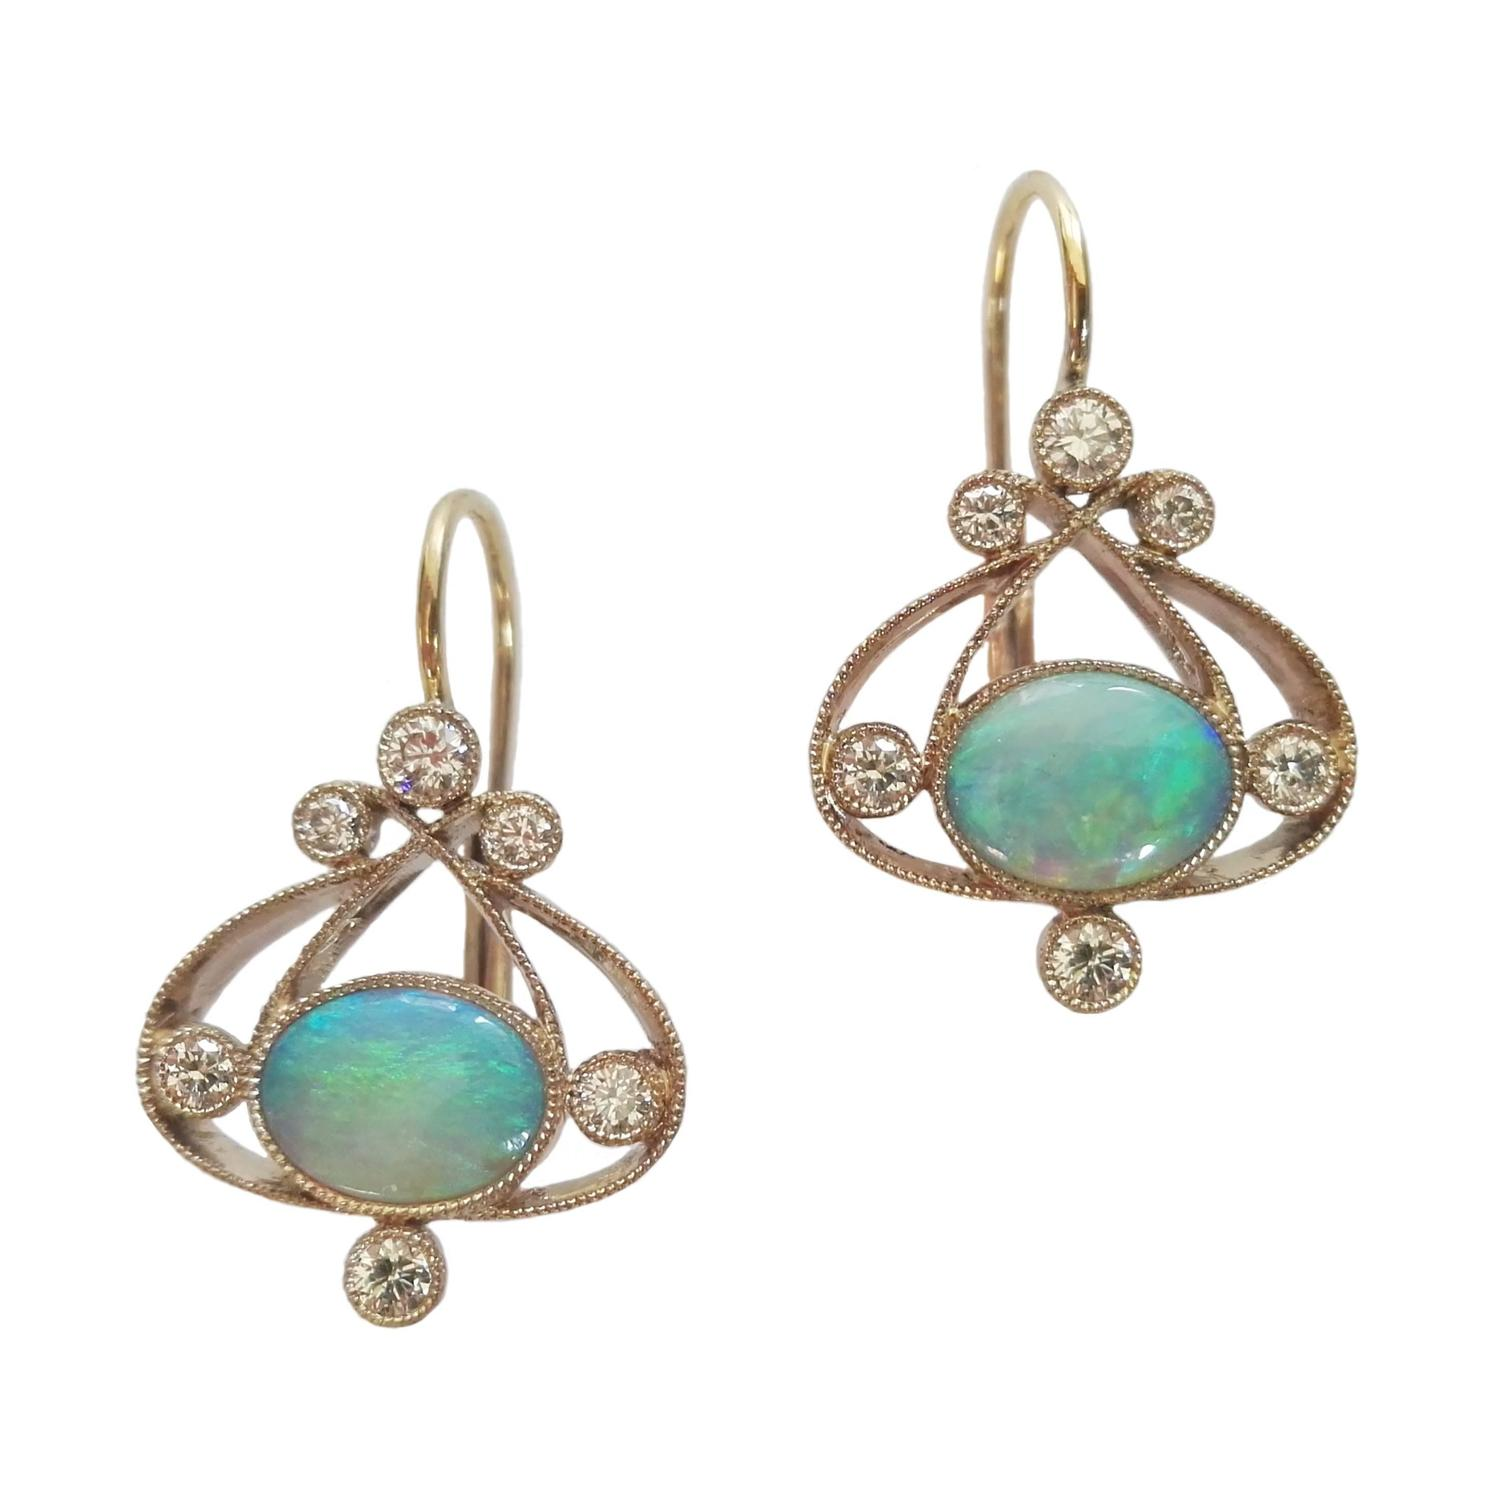 Dalben Australian Opal Diamond Gold Earrings For Sale At